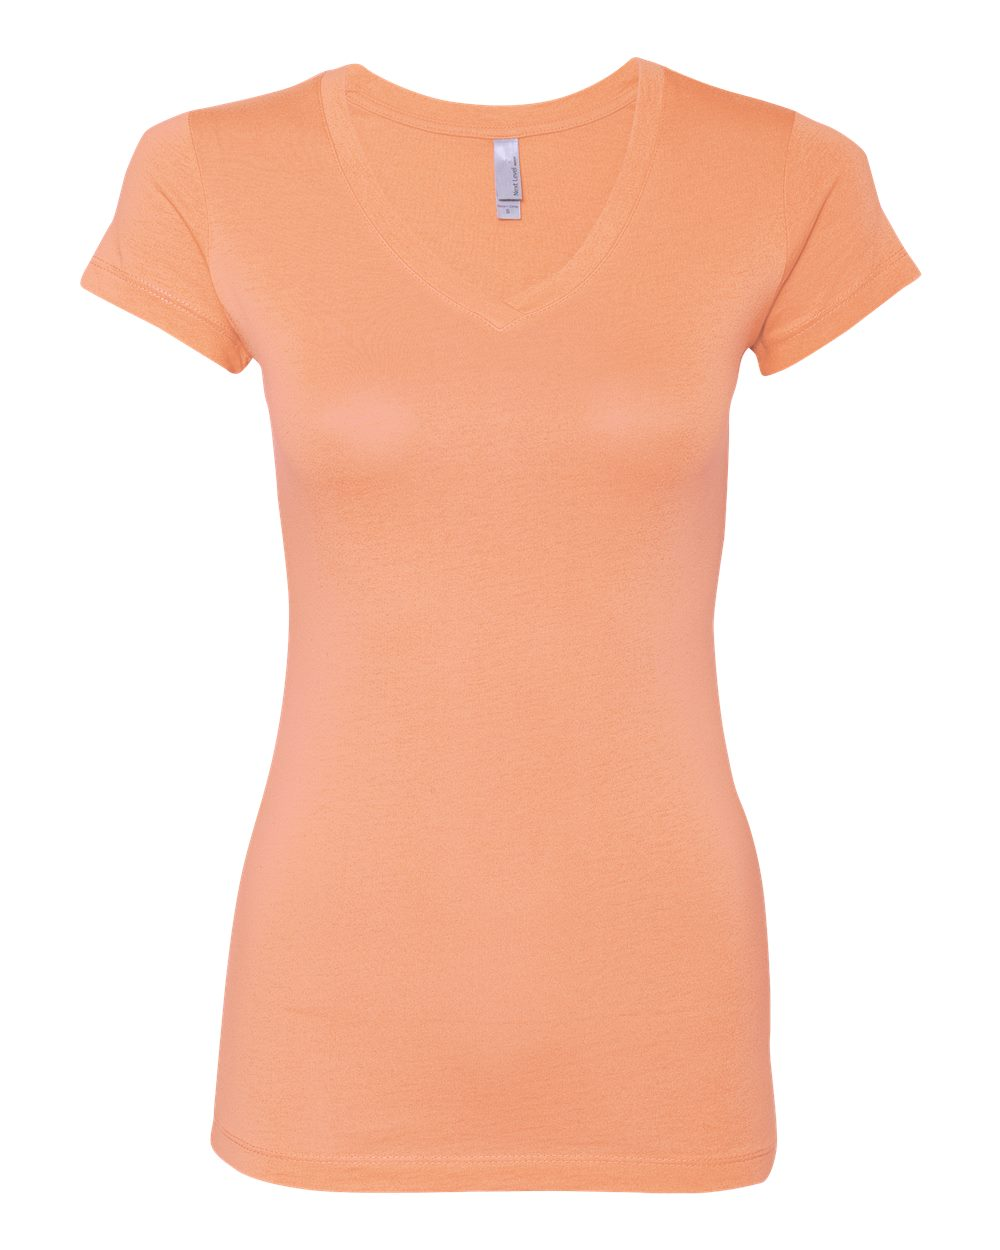 Next_Level_3400L_Light_Orange_Front_High.jpg